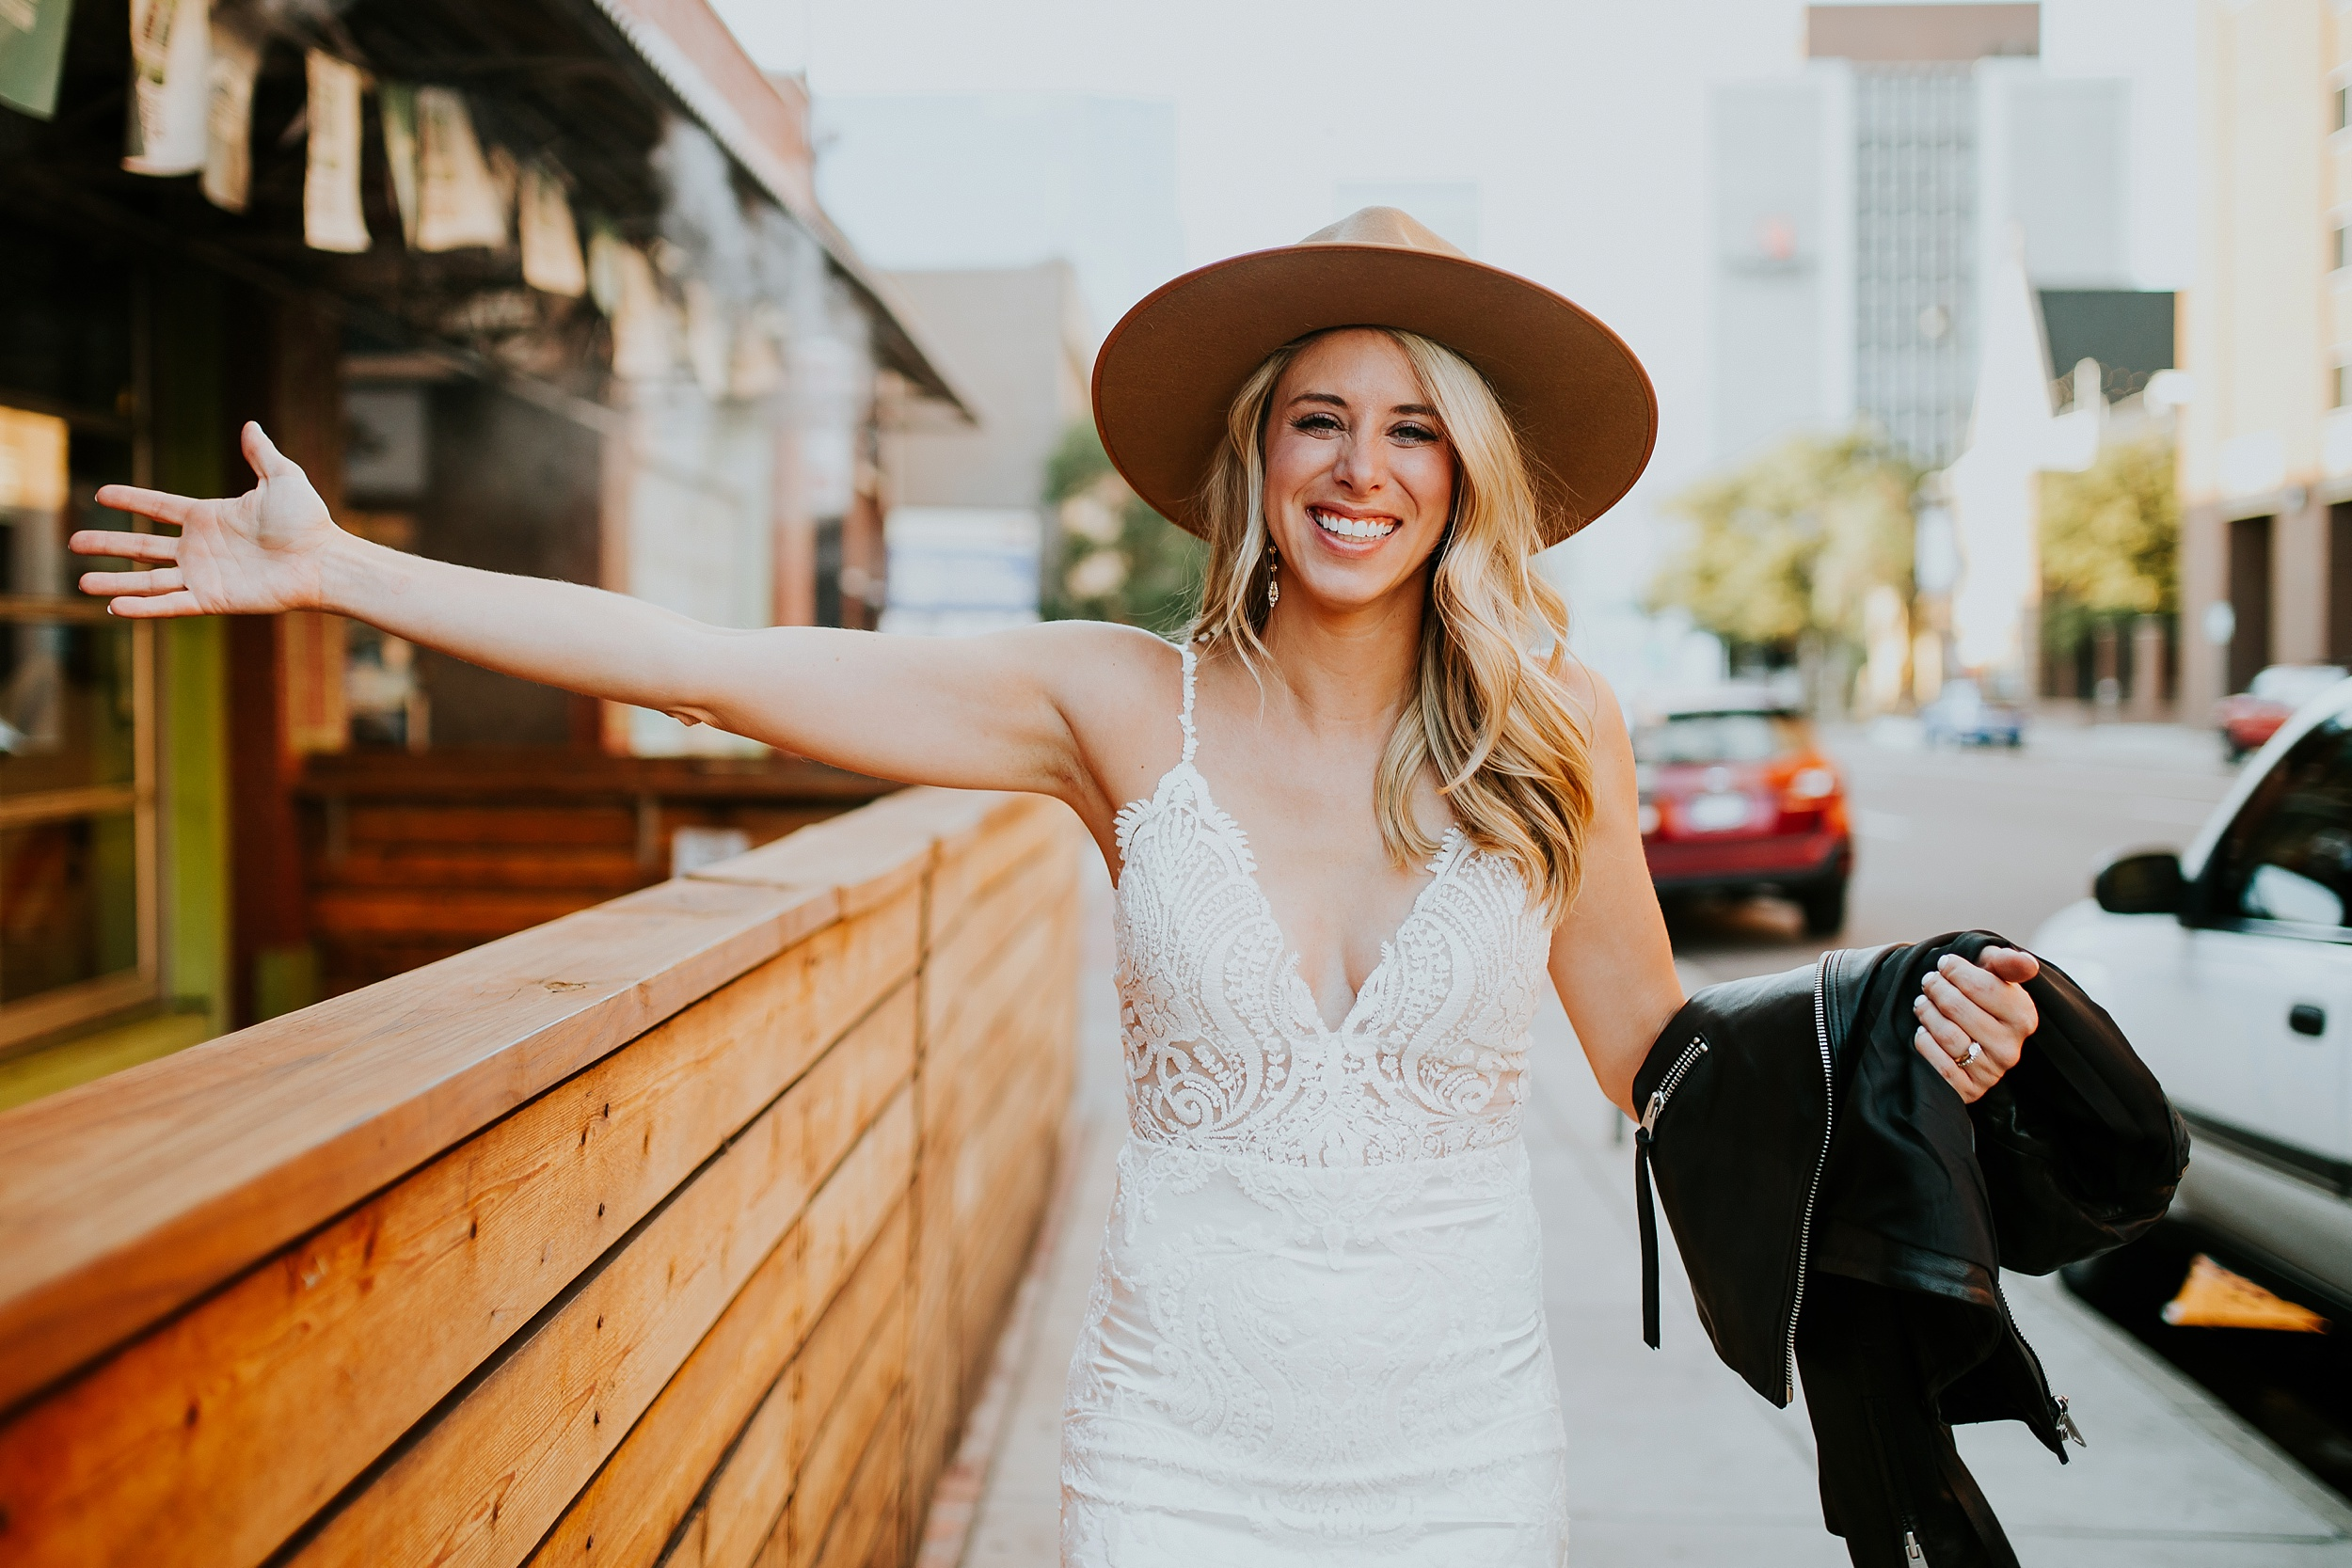 DowntownDenver_Colorado_Elopement_Anniversary_Session_Urban_Edit-8.jpg